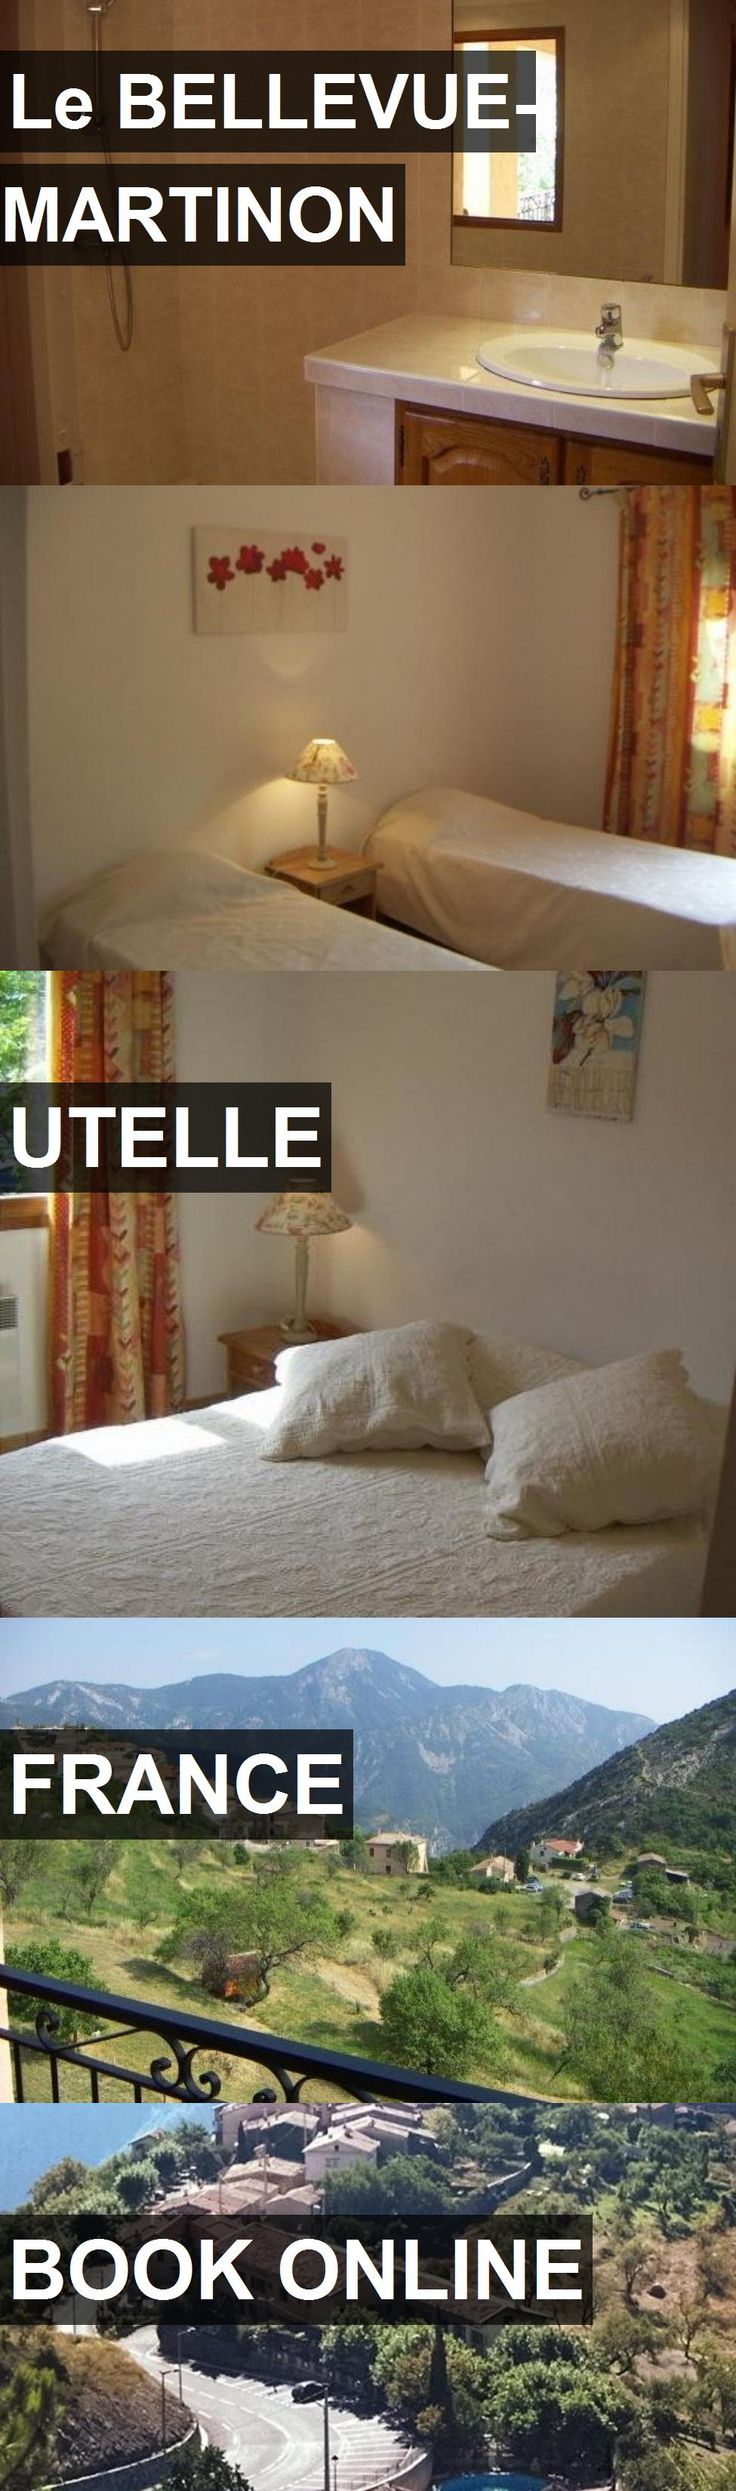 Hotel Le BELLEVUE- MARTINON in Utelle, France. For more information, photos, reviews and best prices please follow the link. #France #Utelle #hotel #travel #vacation